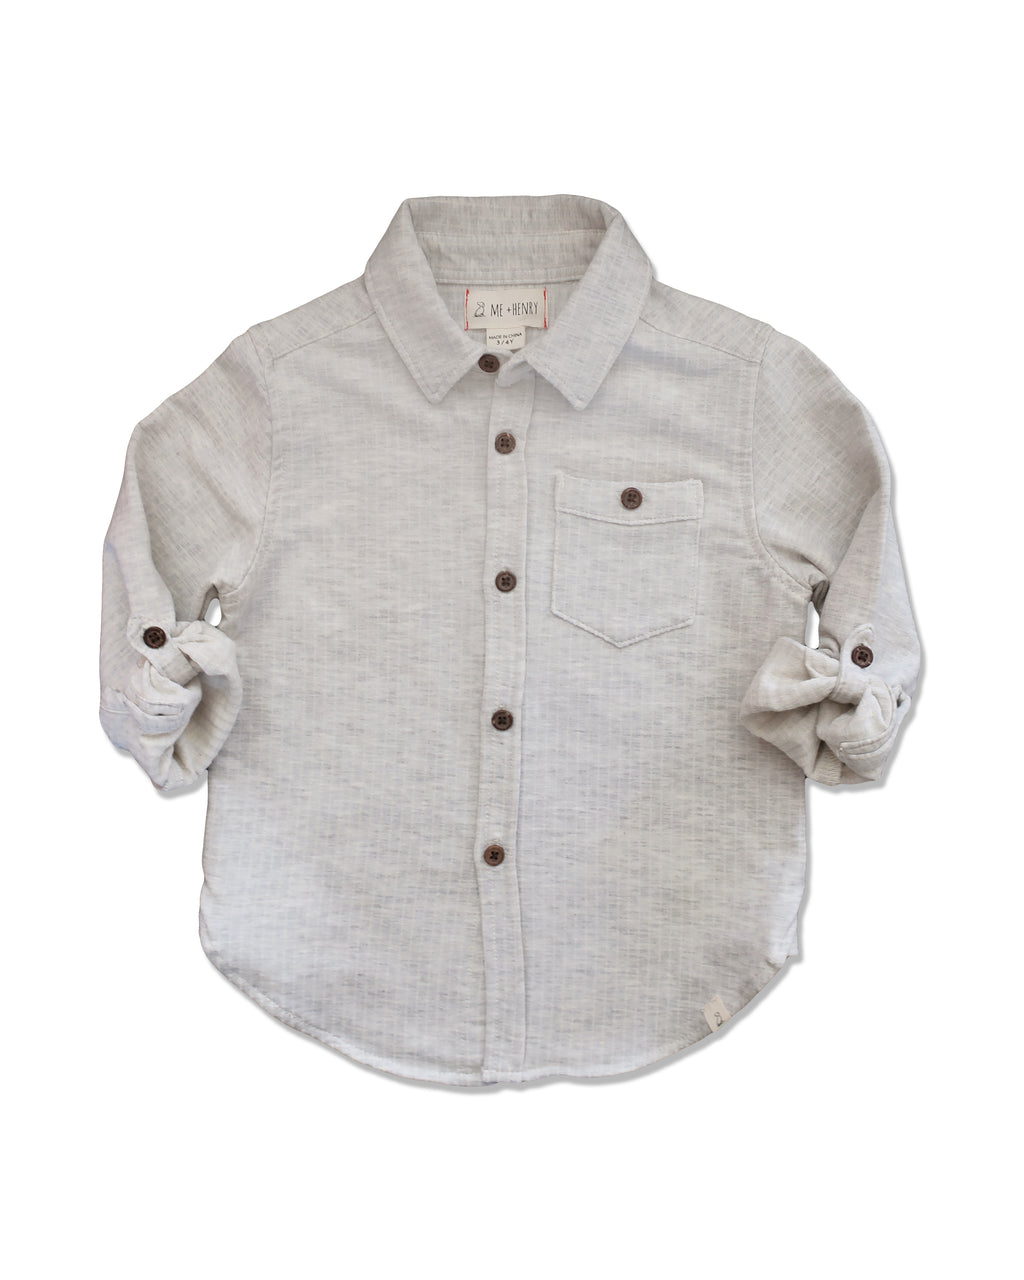 front image of grey jersey shirt for boys with sleeves rolled up